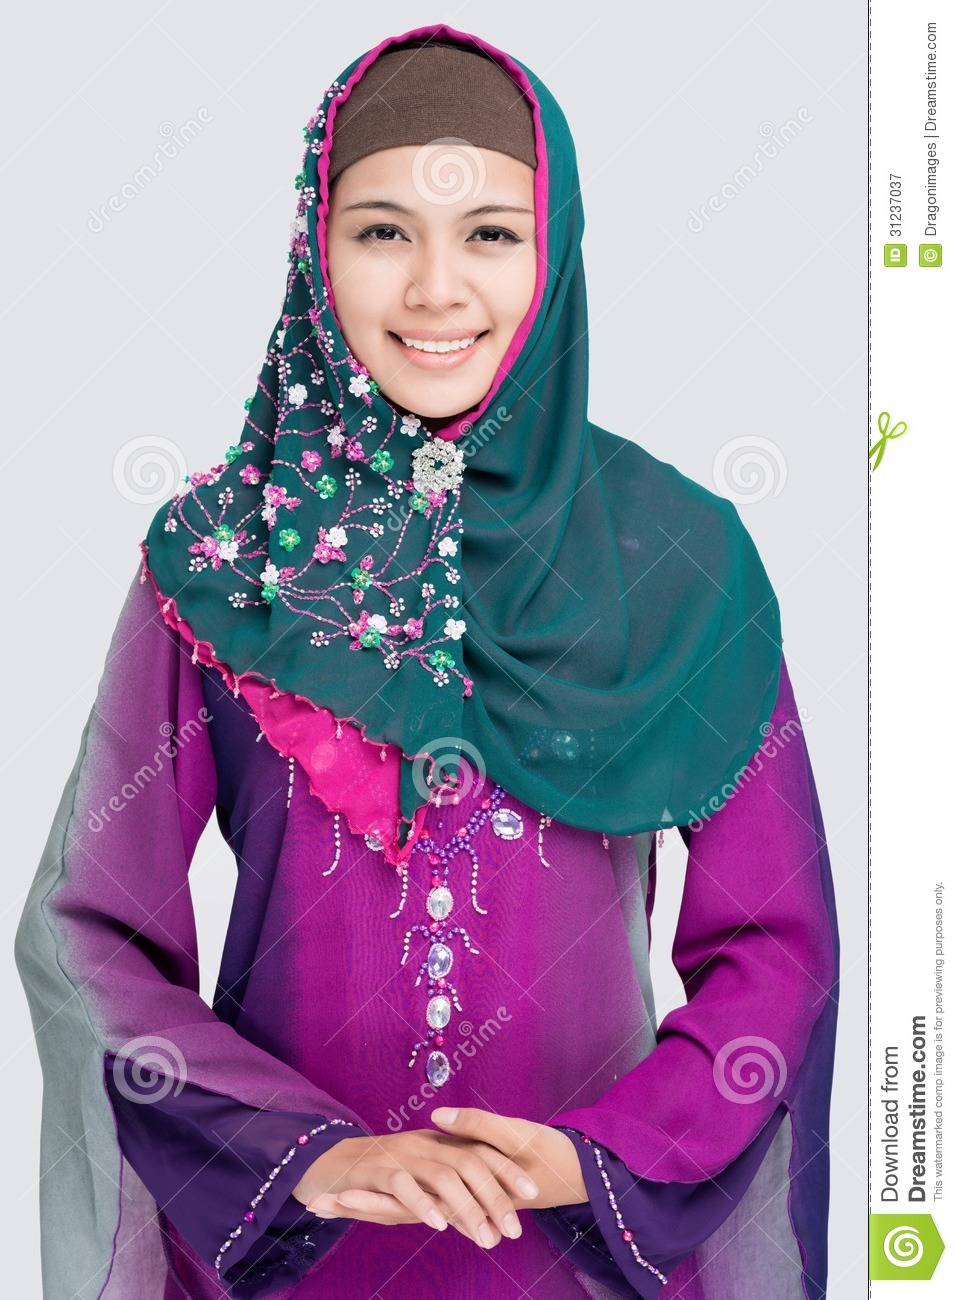 violet hill single muslim girls List of top 10 singles in 2008 (australia)  violet hill coldplay: 9 june 23 2  i kissed a girl (#6) katy perry: 1 july 14 11.